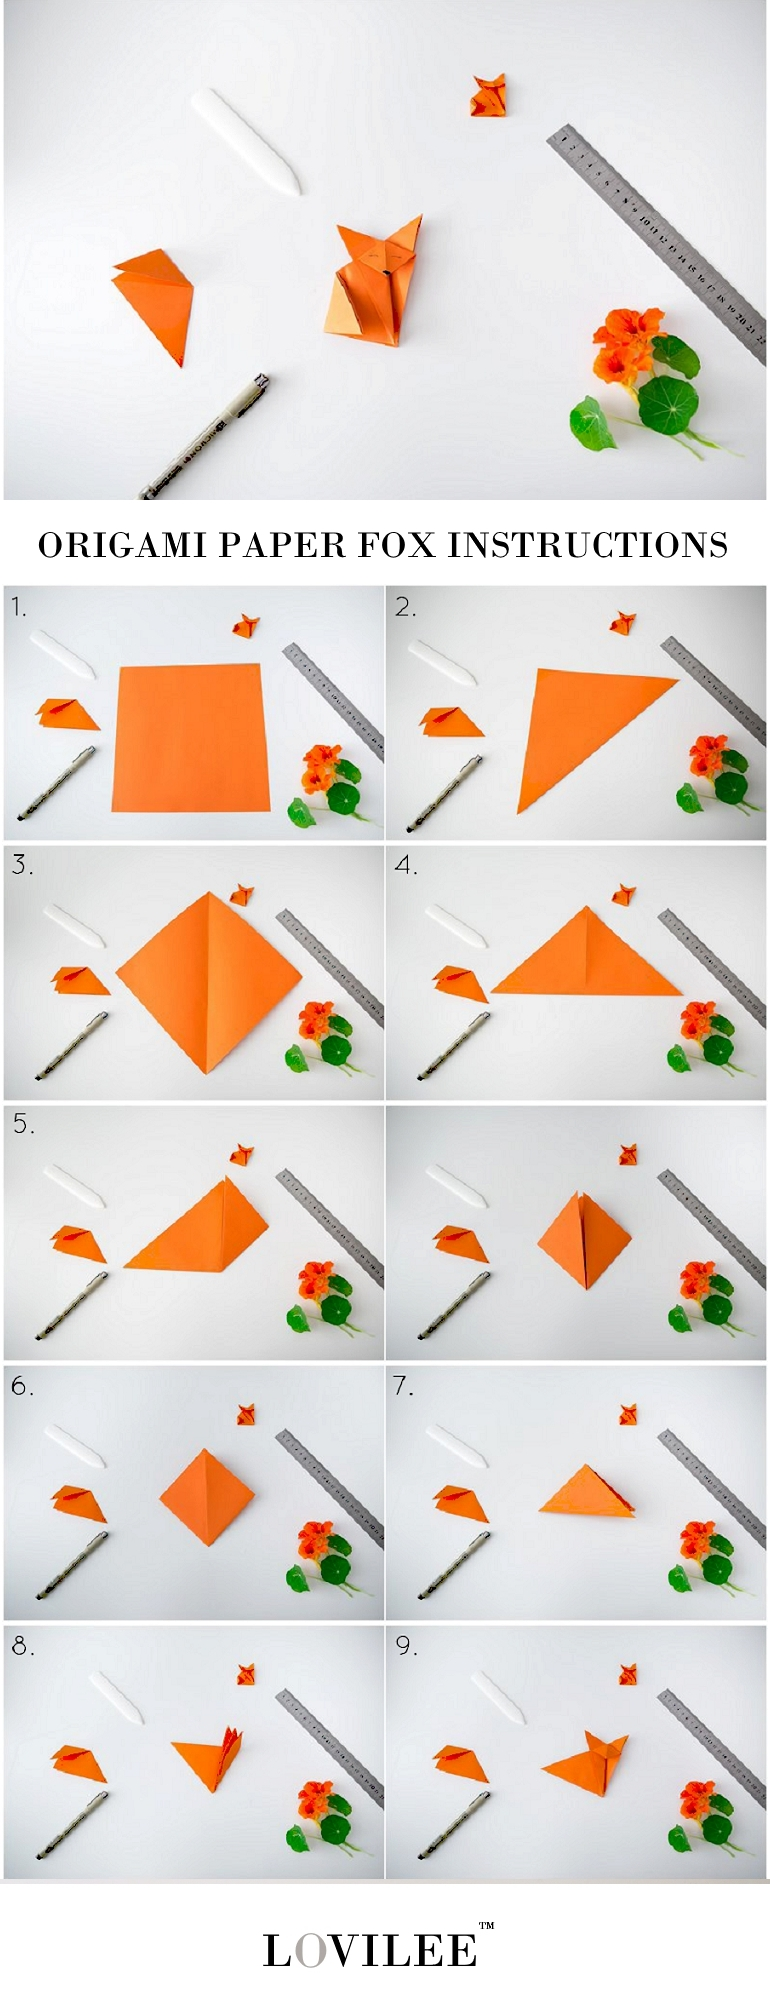 Origami paper fox folding instructions